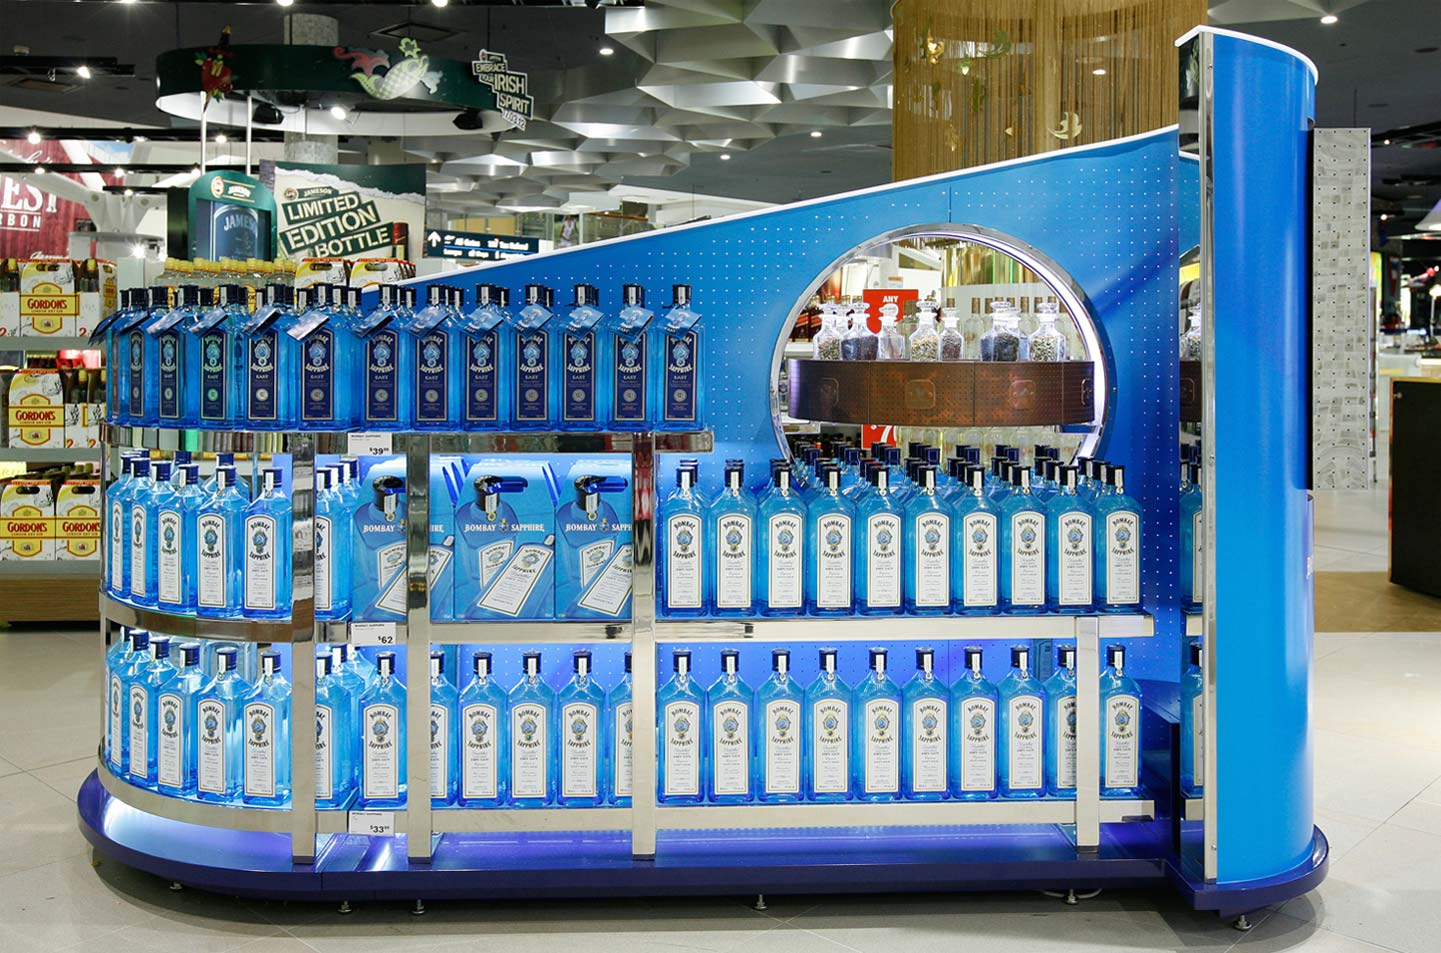 Innovative Bombay Sapphire visual merchandising display Sydney Airport designed by CampbellRigg